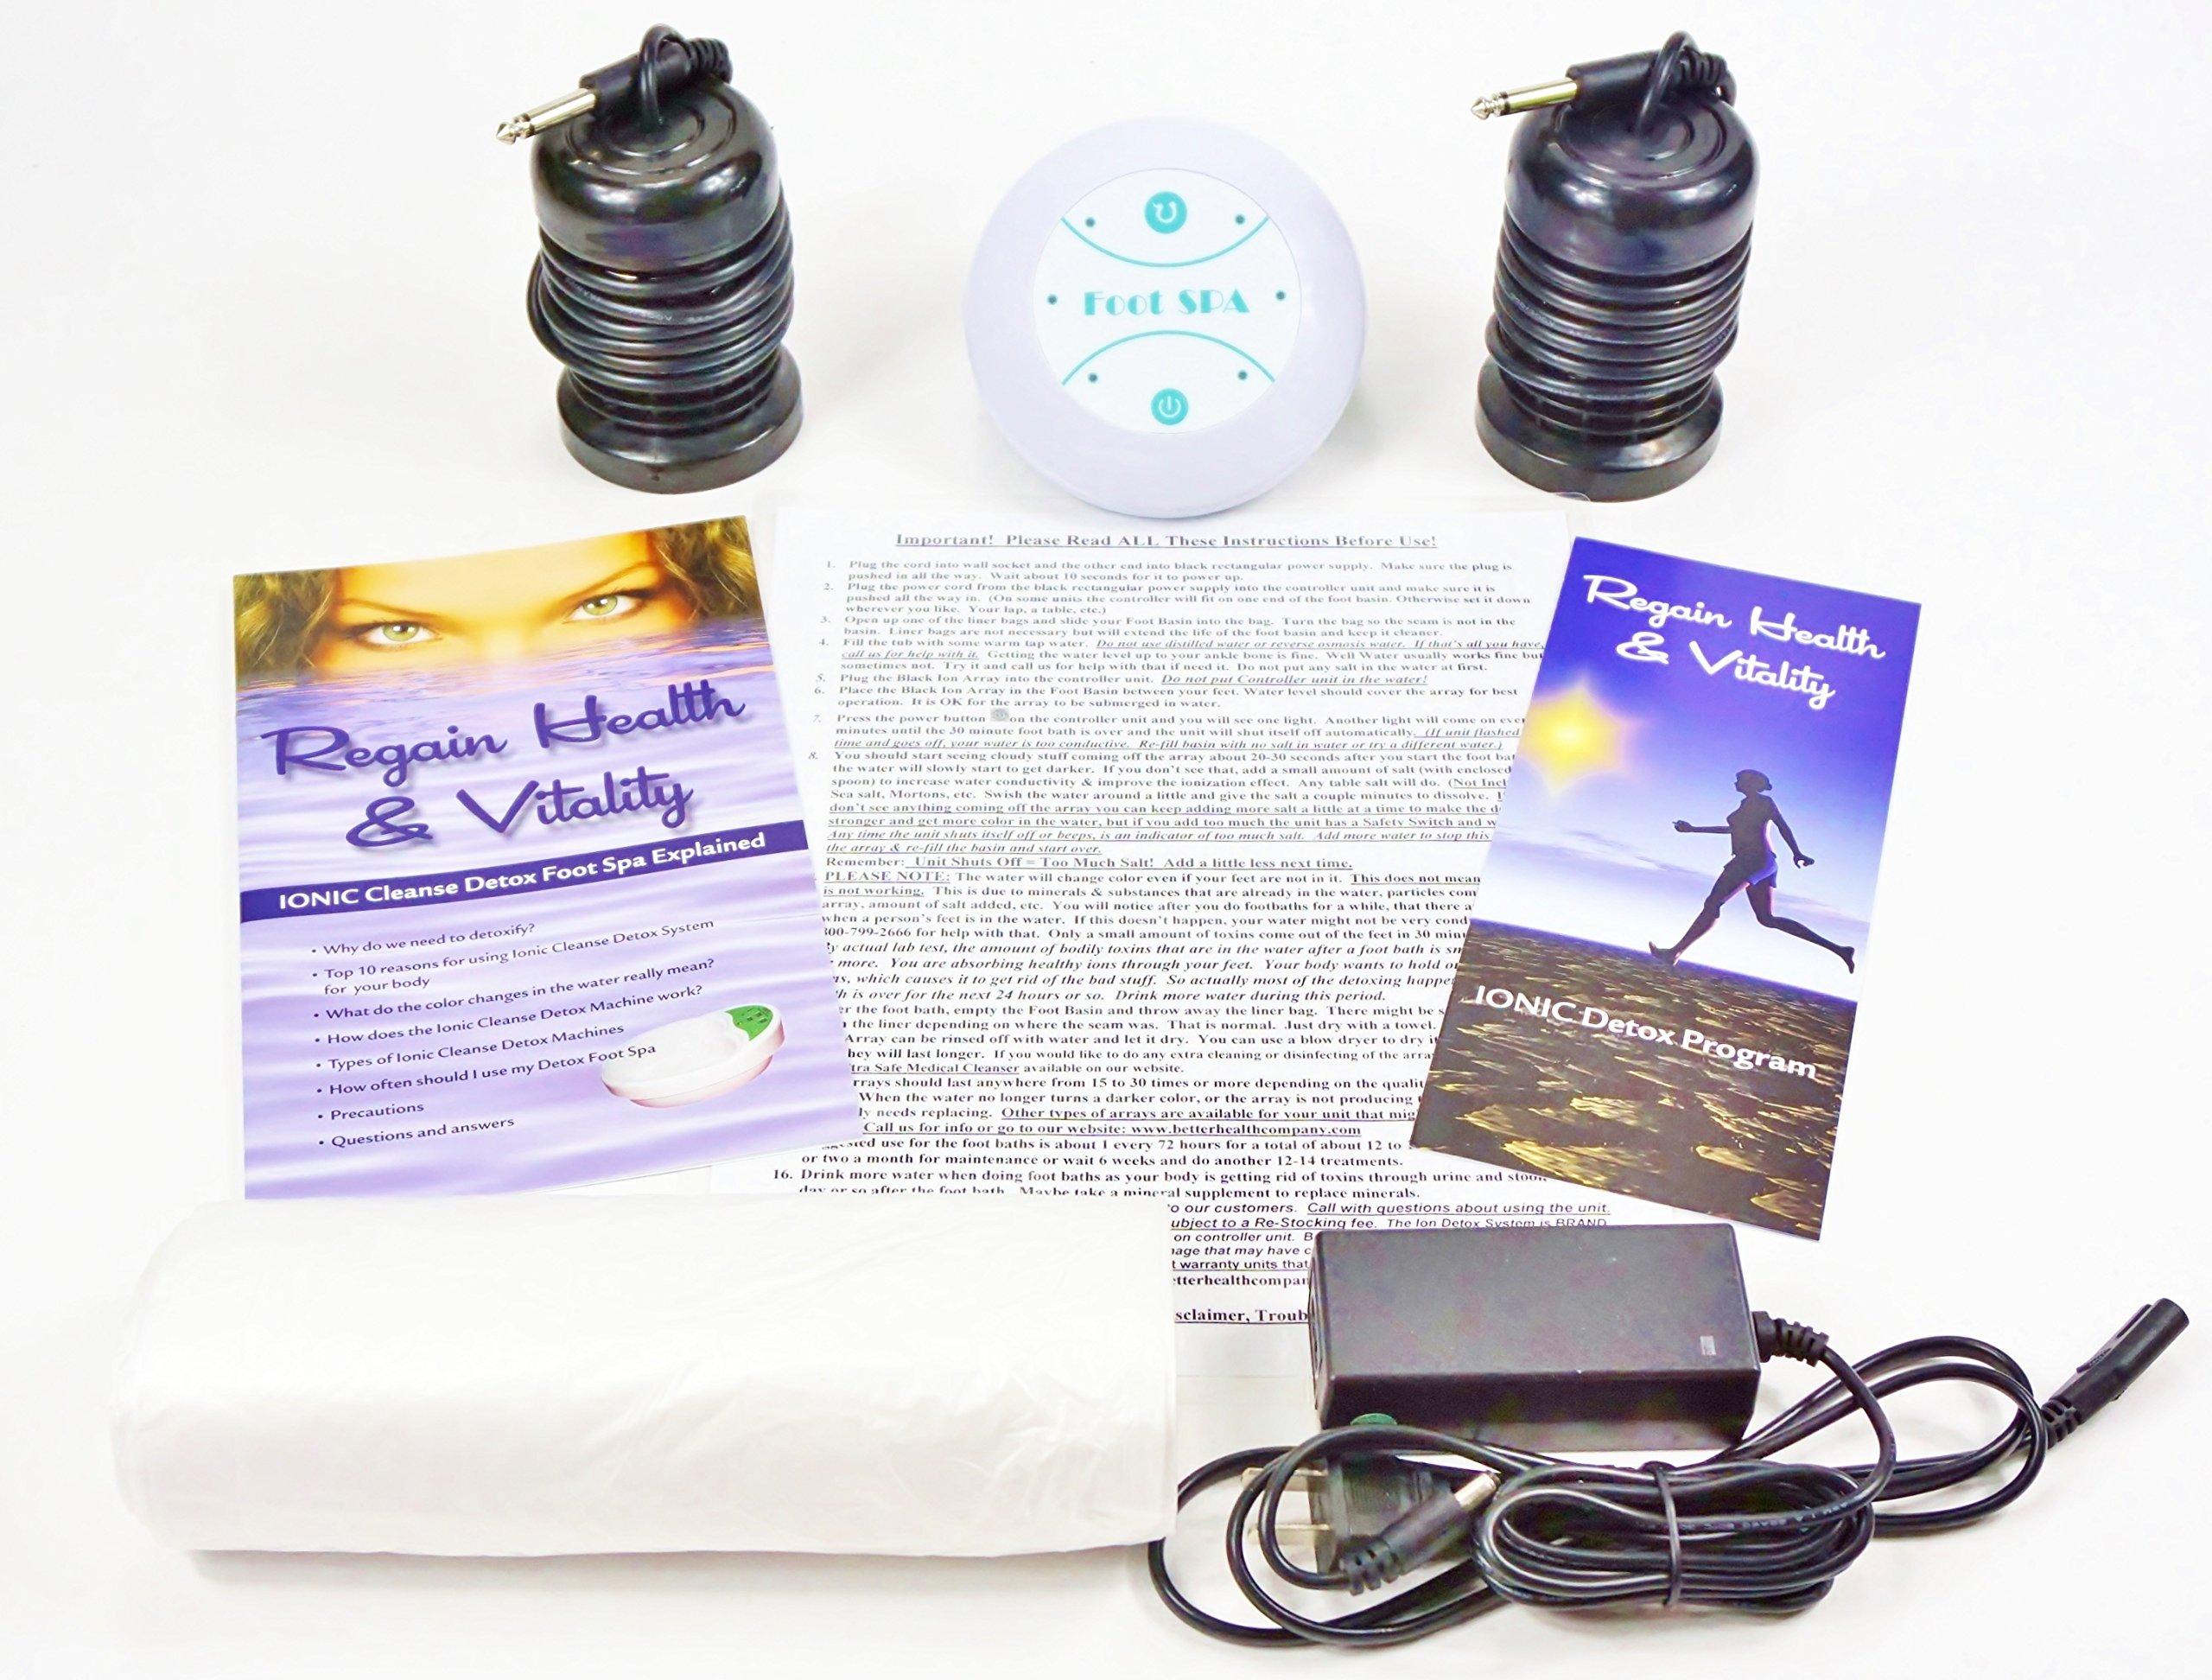 Ionic detox Foot Bath Spa Chi Cleanse Unit for Home Use. Best Home Foot Spa. Comes with Free Regain Healh & Vitality Booklet